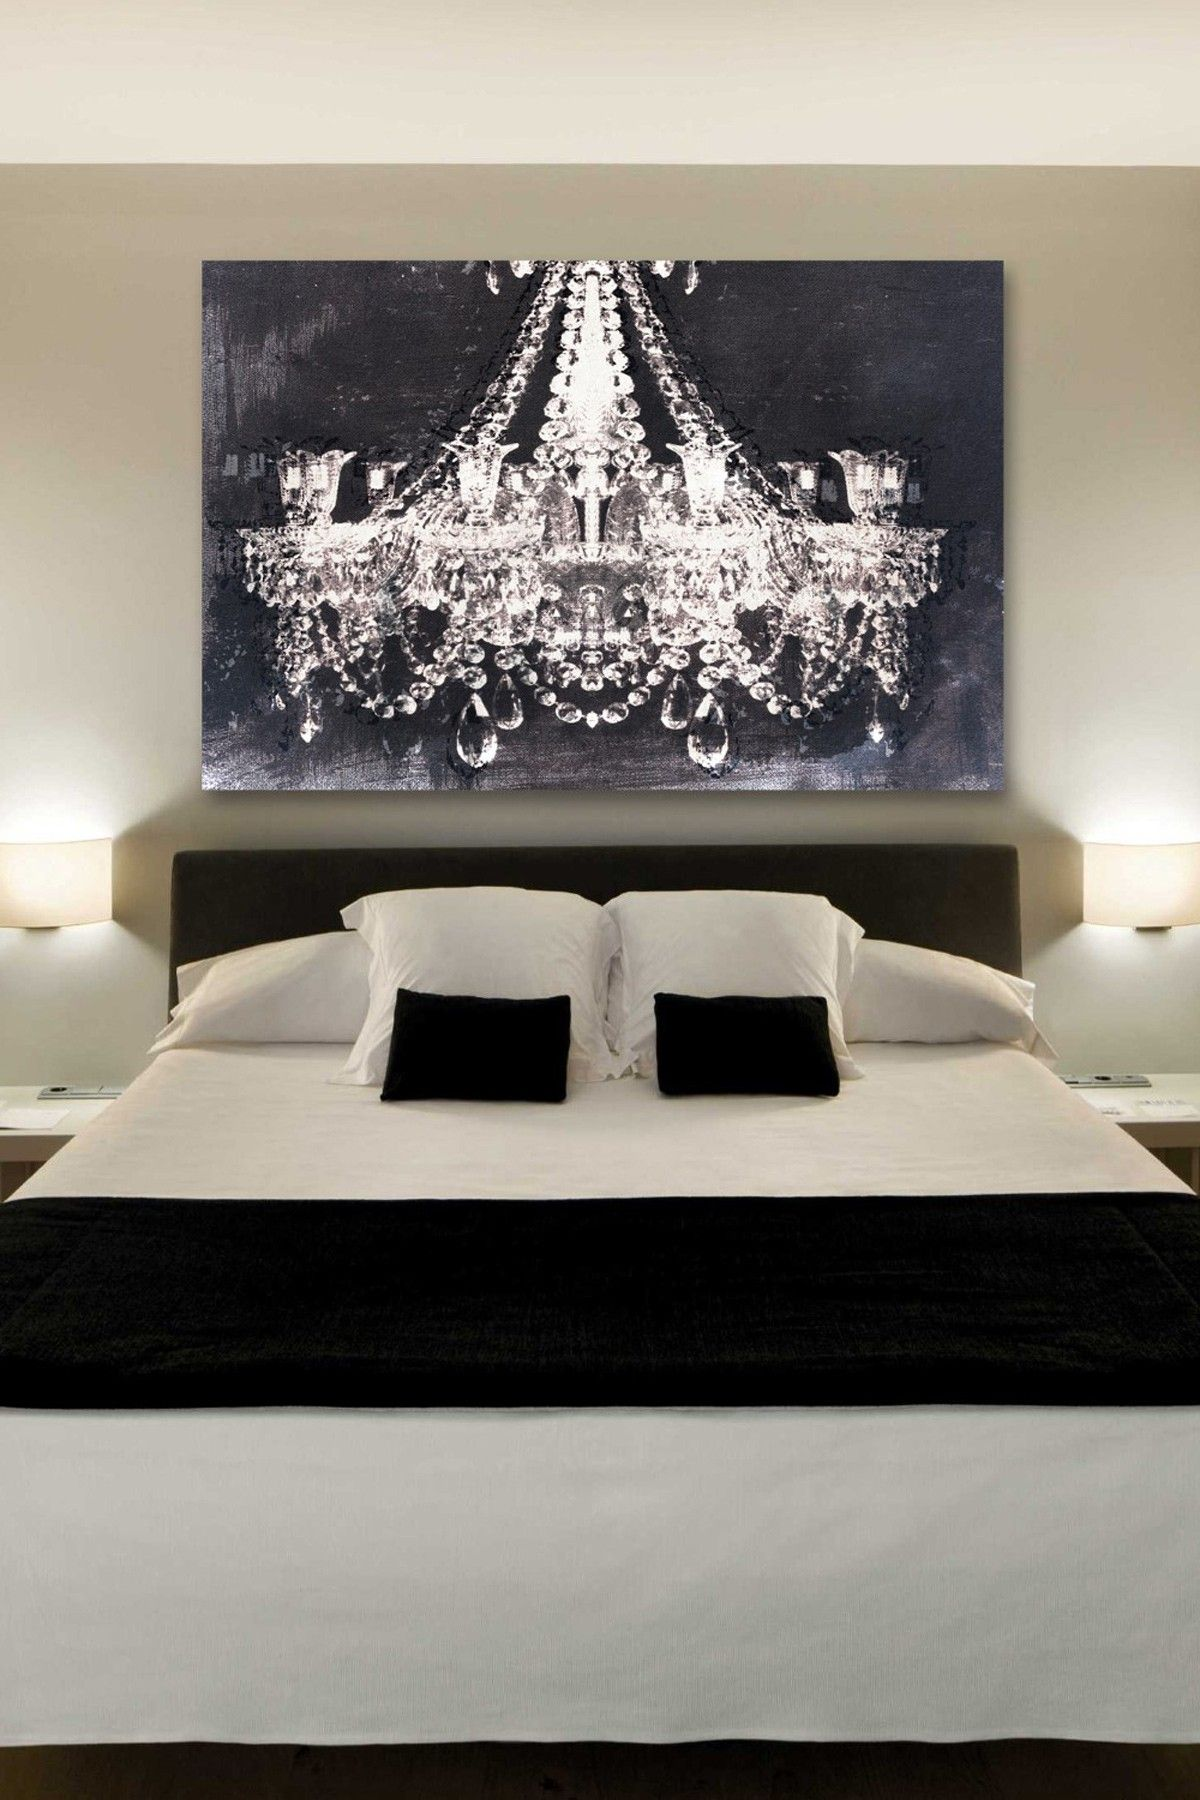 The chandelier art gives such a romantic touch to this bedroom ...